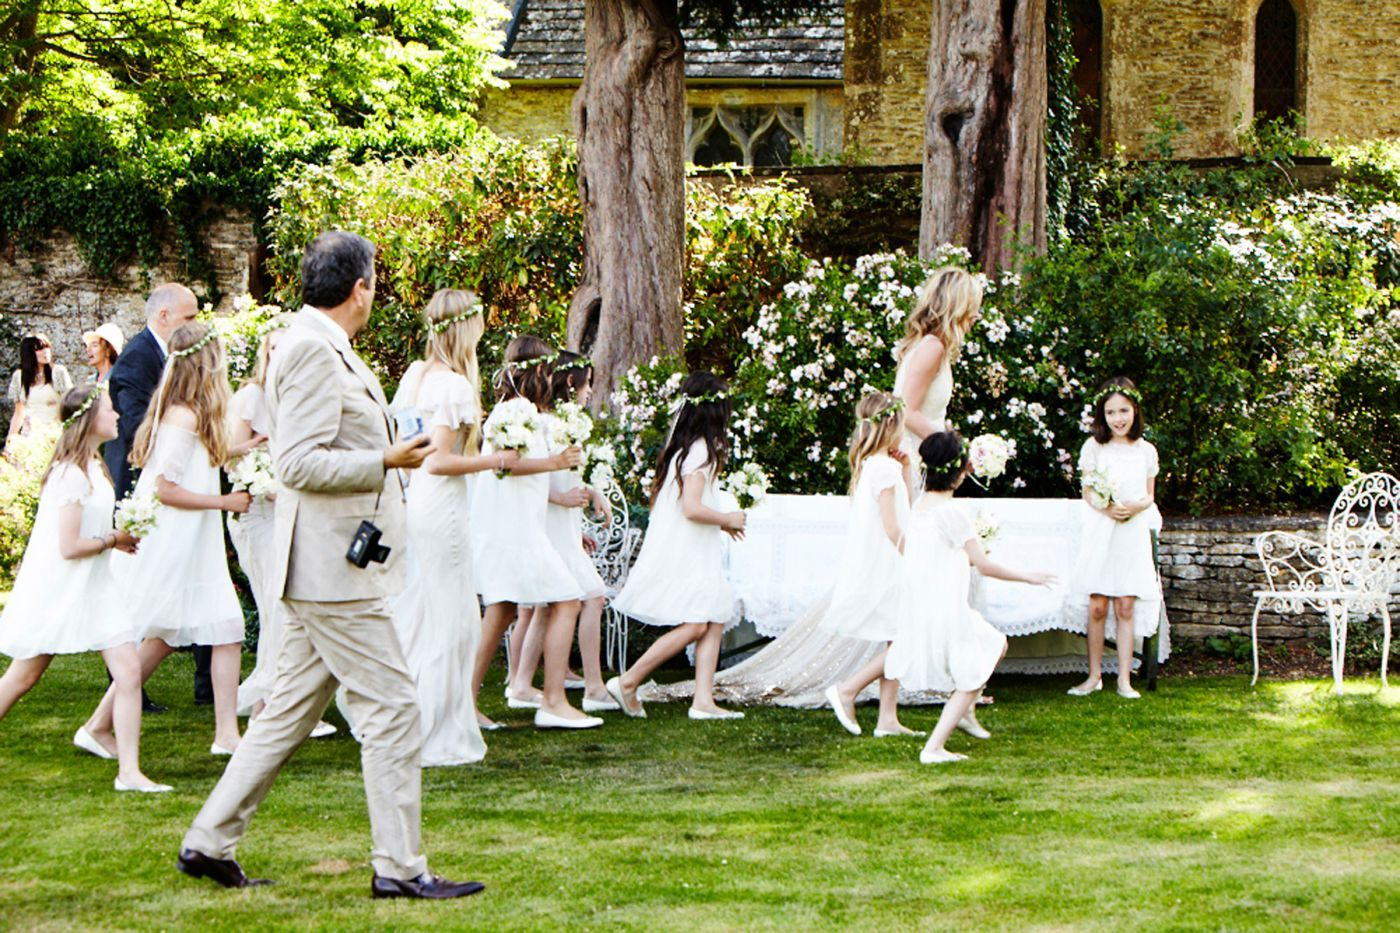 Outtakes Kate Moss Wedding